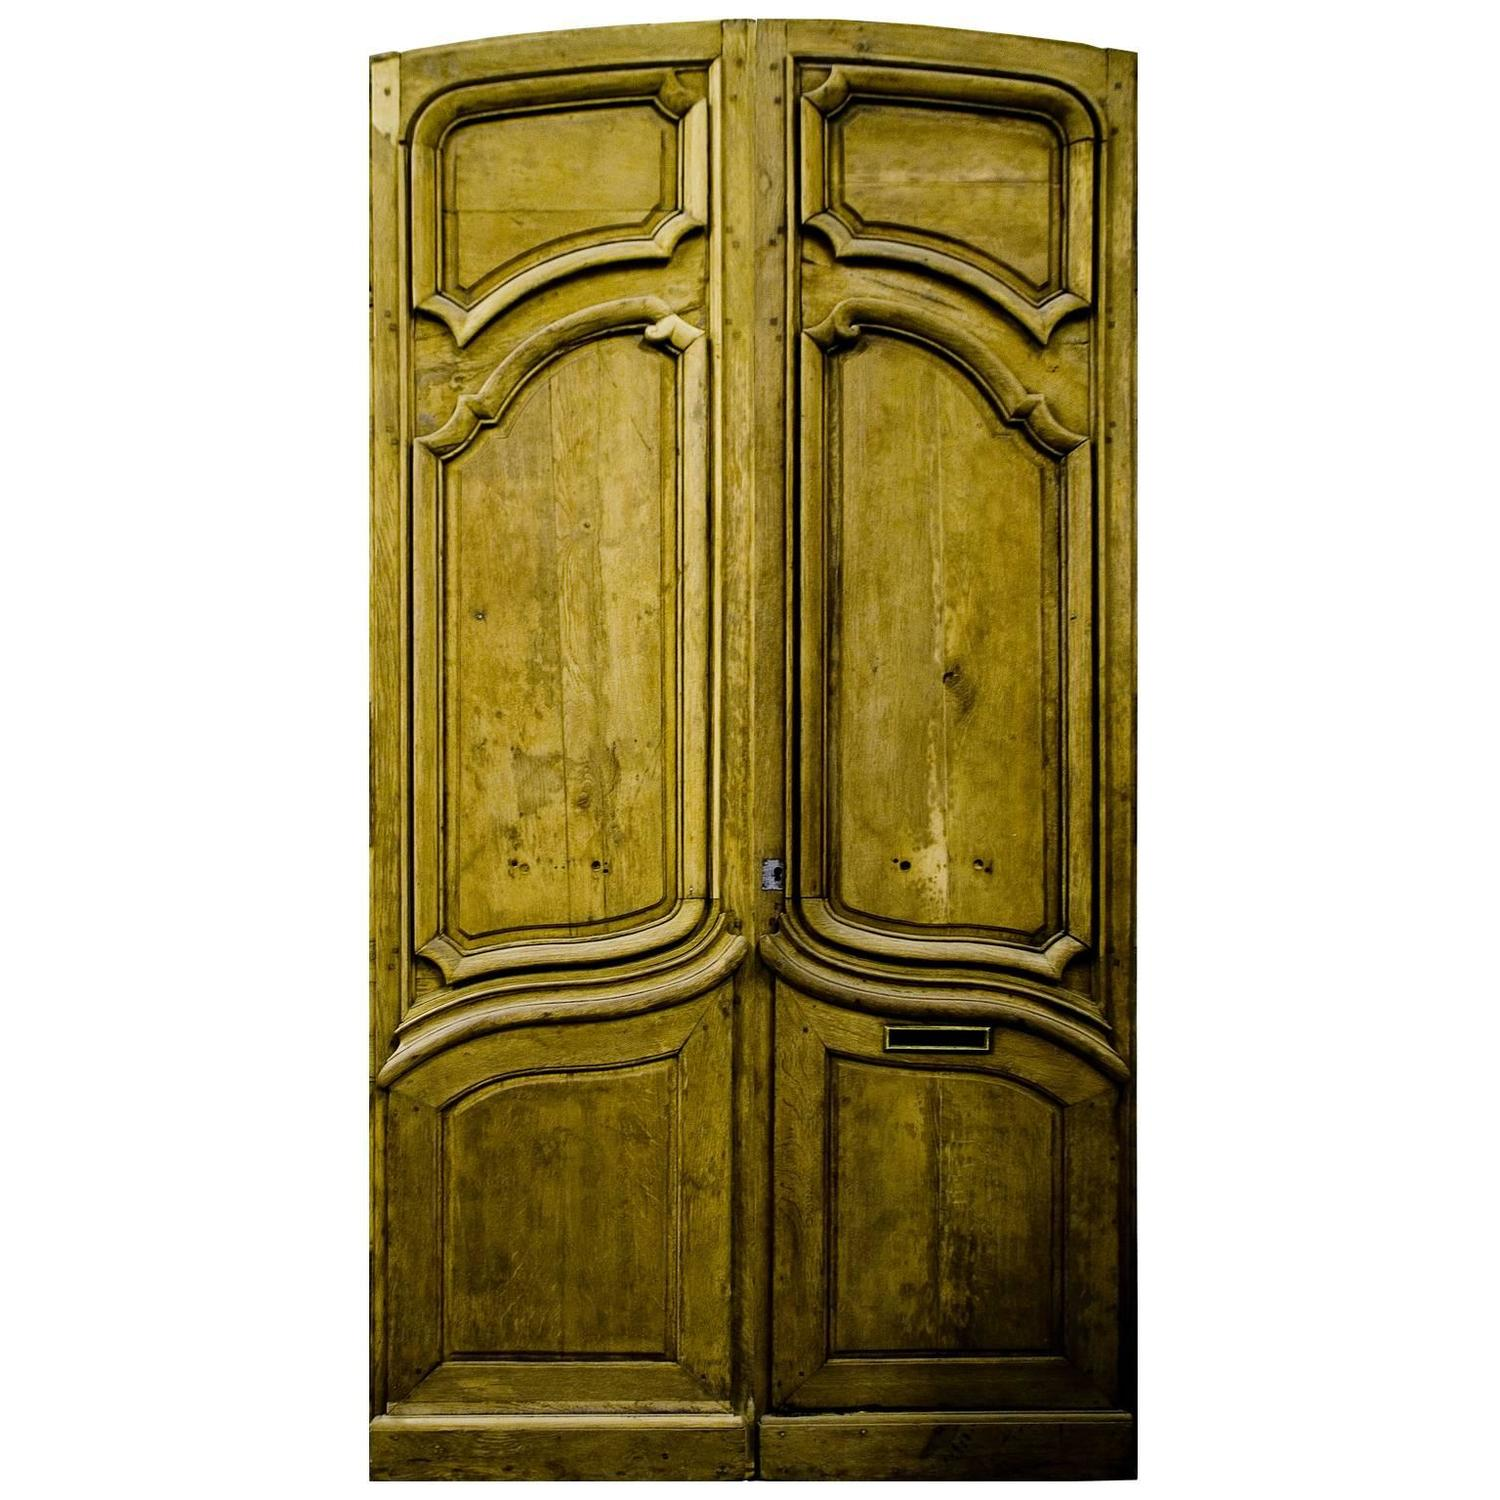 Free access interior doors for sale south florida woodyplan for Interior doors for sale